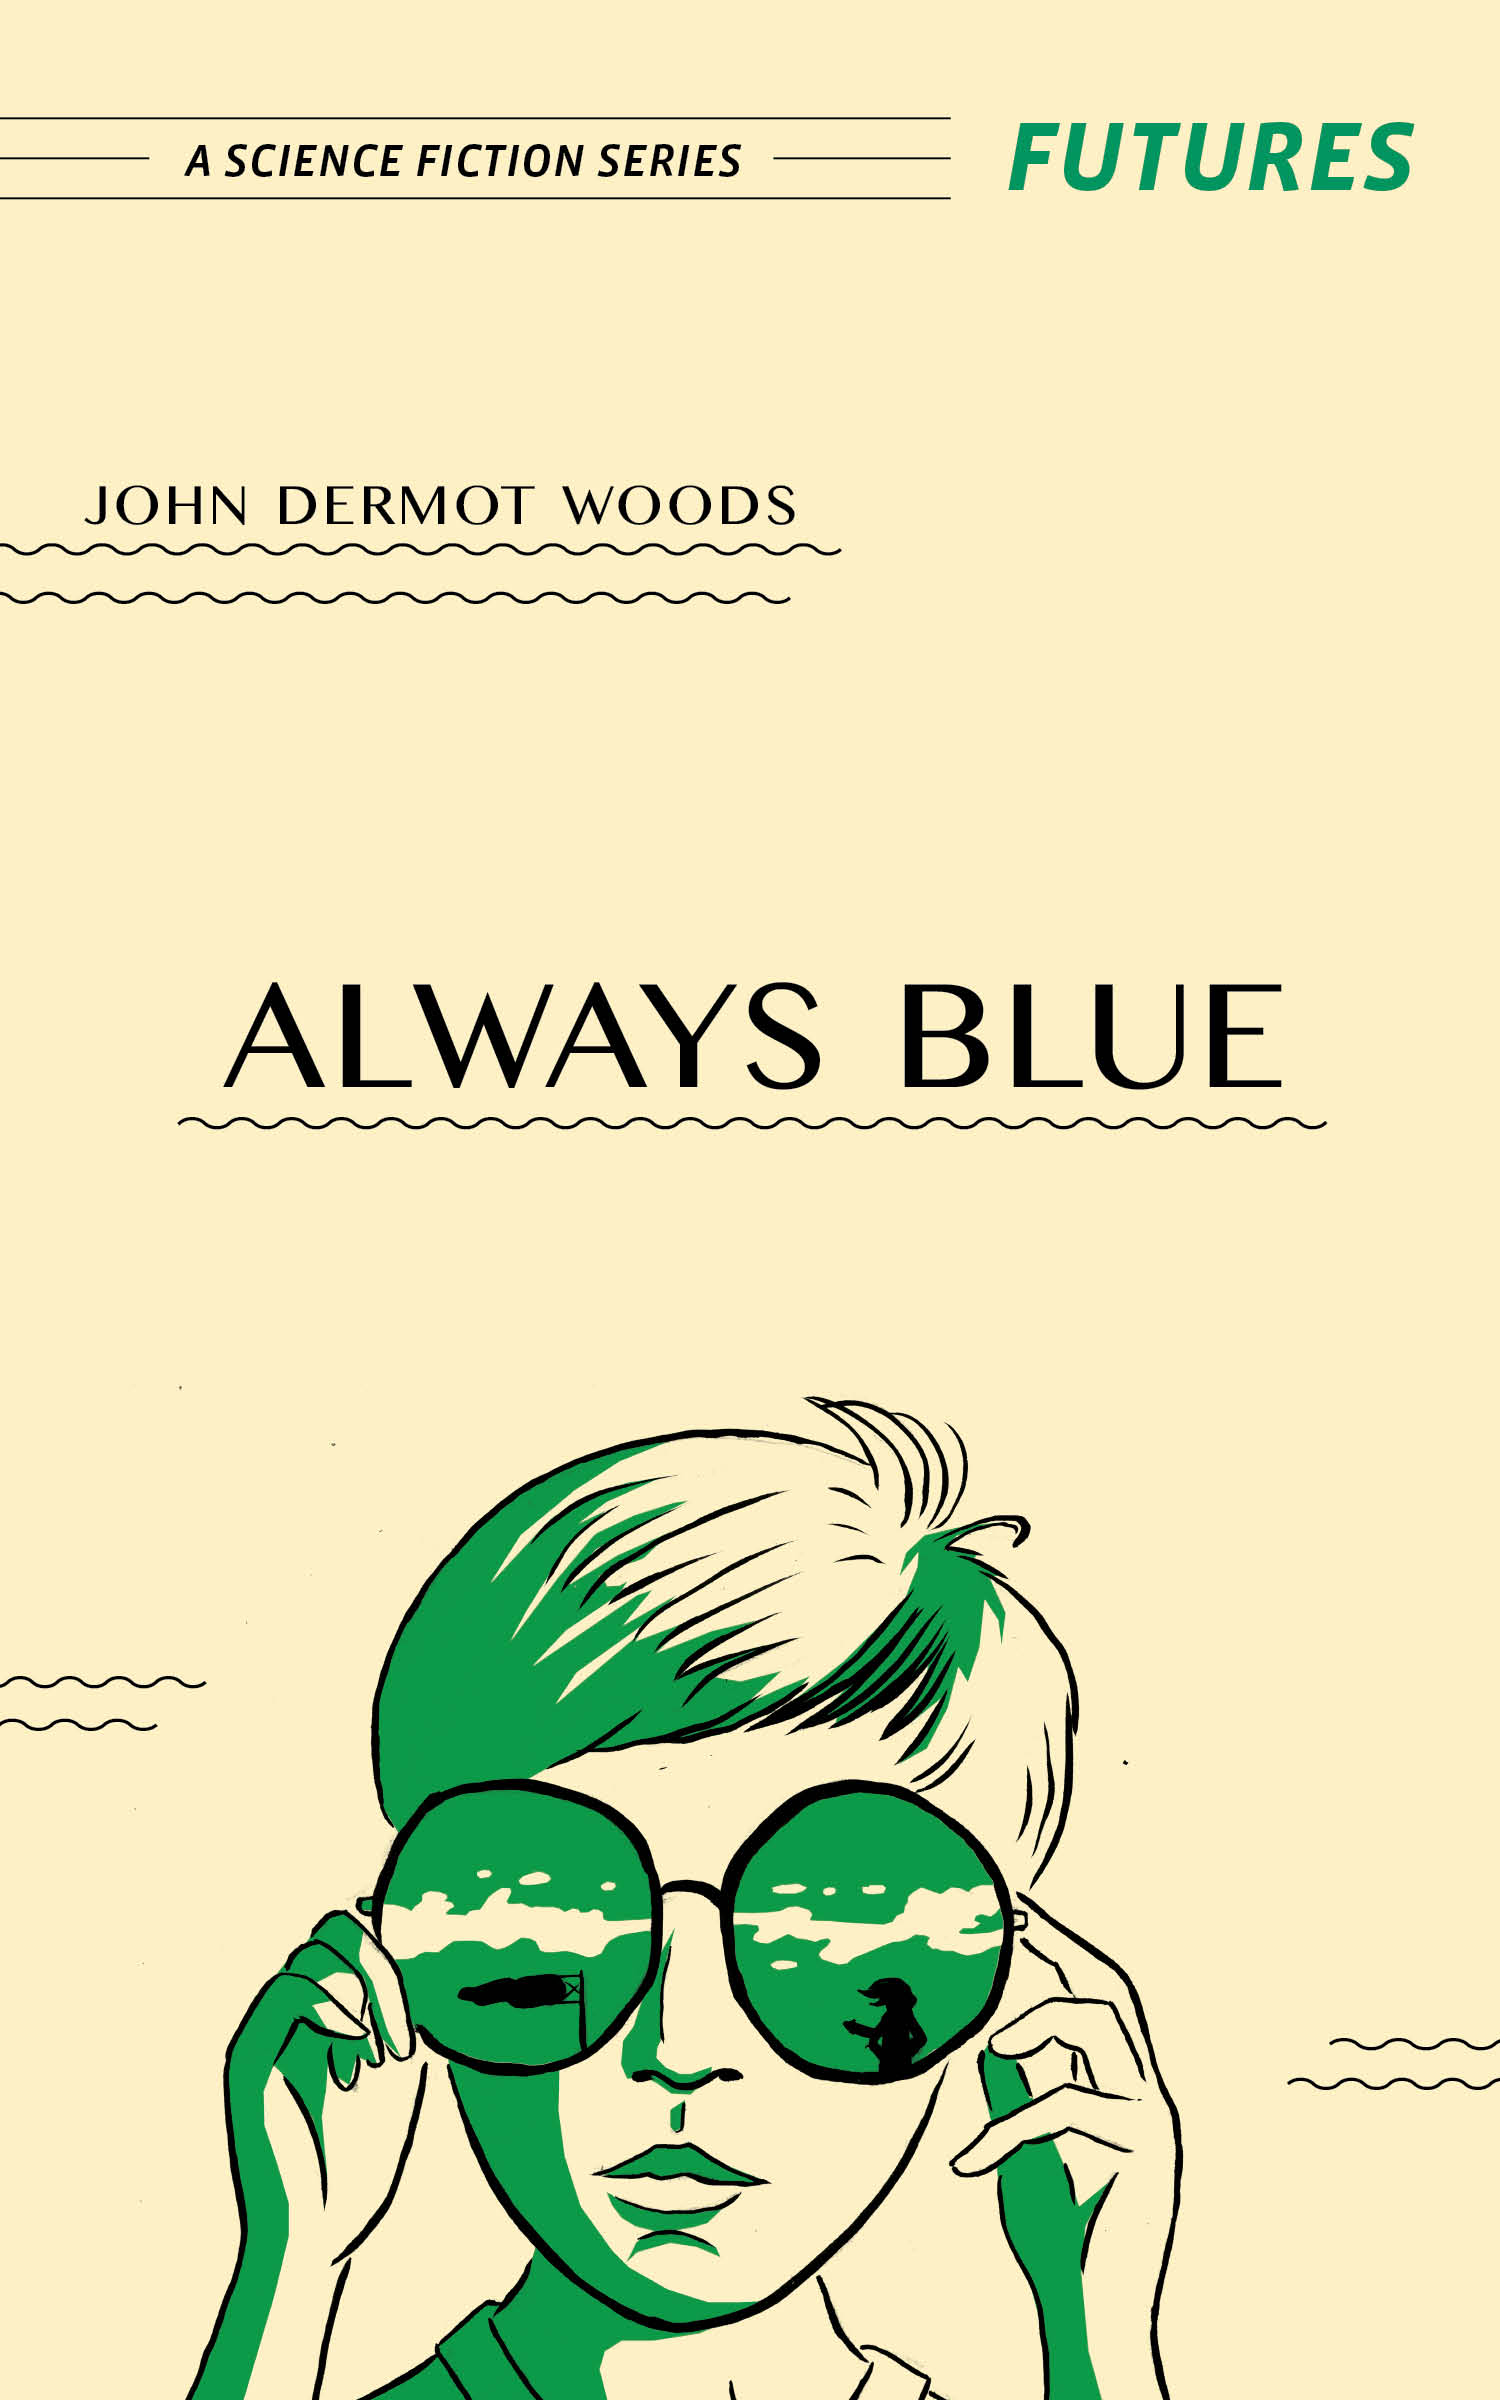 """""""Always Blue"""" by John Dermot Woods, from Futures: A Science Fiction Series"""